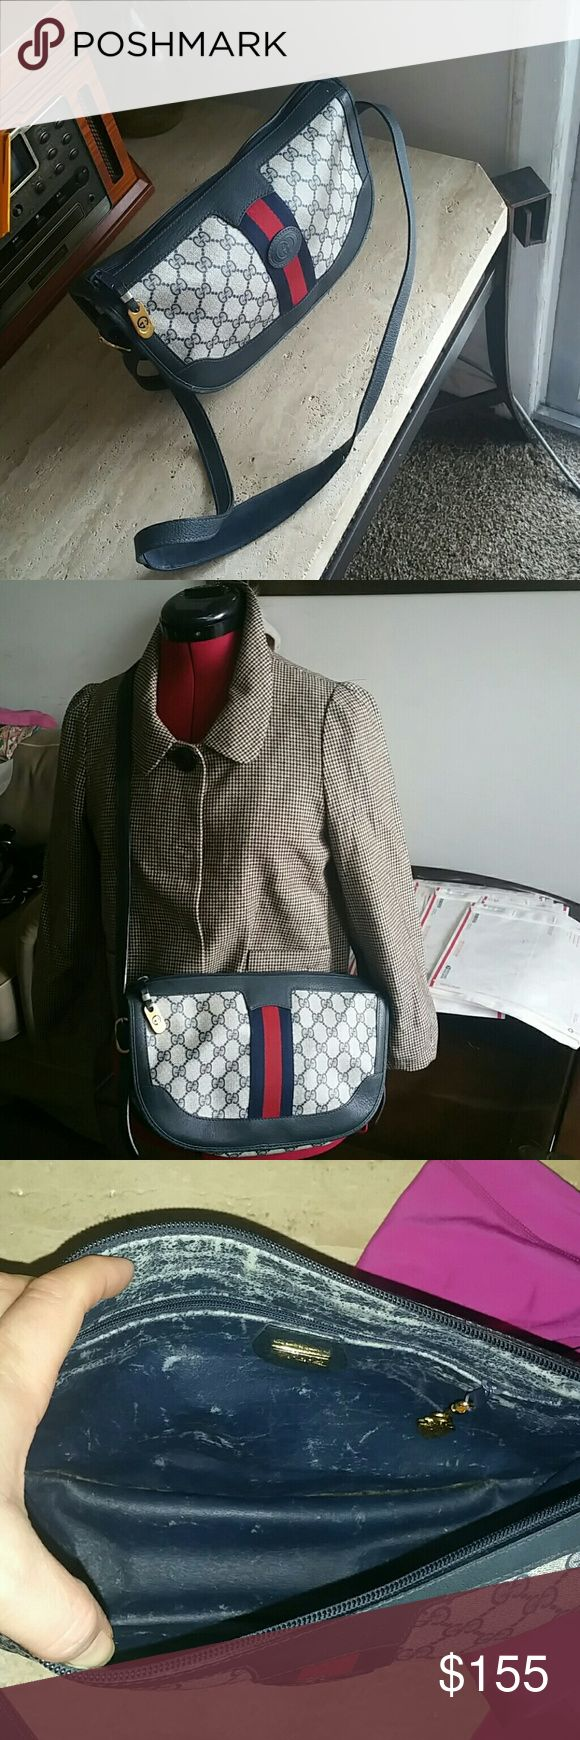 Gucci purse Genuine beautiful bag in very good vintage condition on the outside, very little wear on the  corners. Inside looks more worn as seen in the picture Gucci Bags